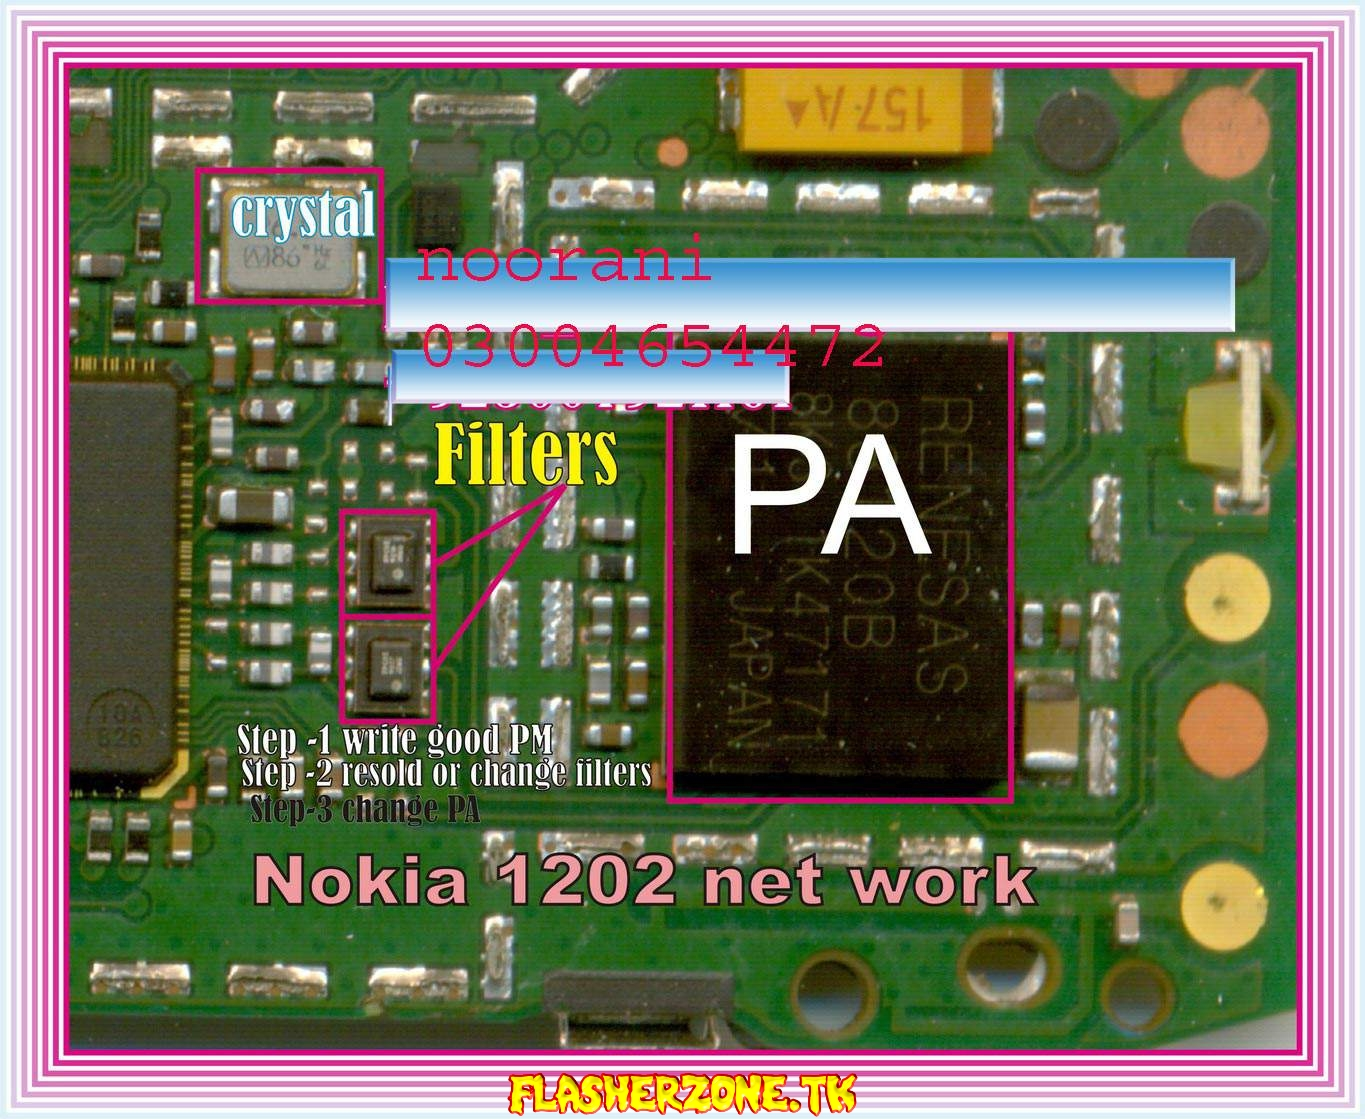 Nokia E51 software version 400.34.011 released This software release brin..